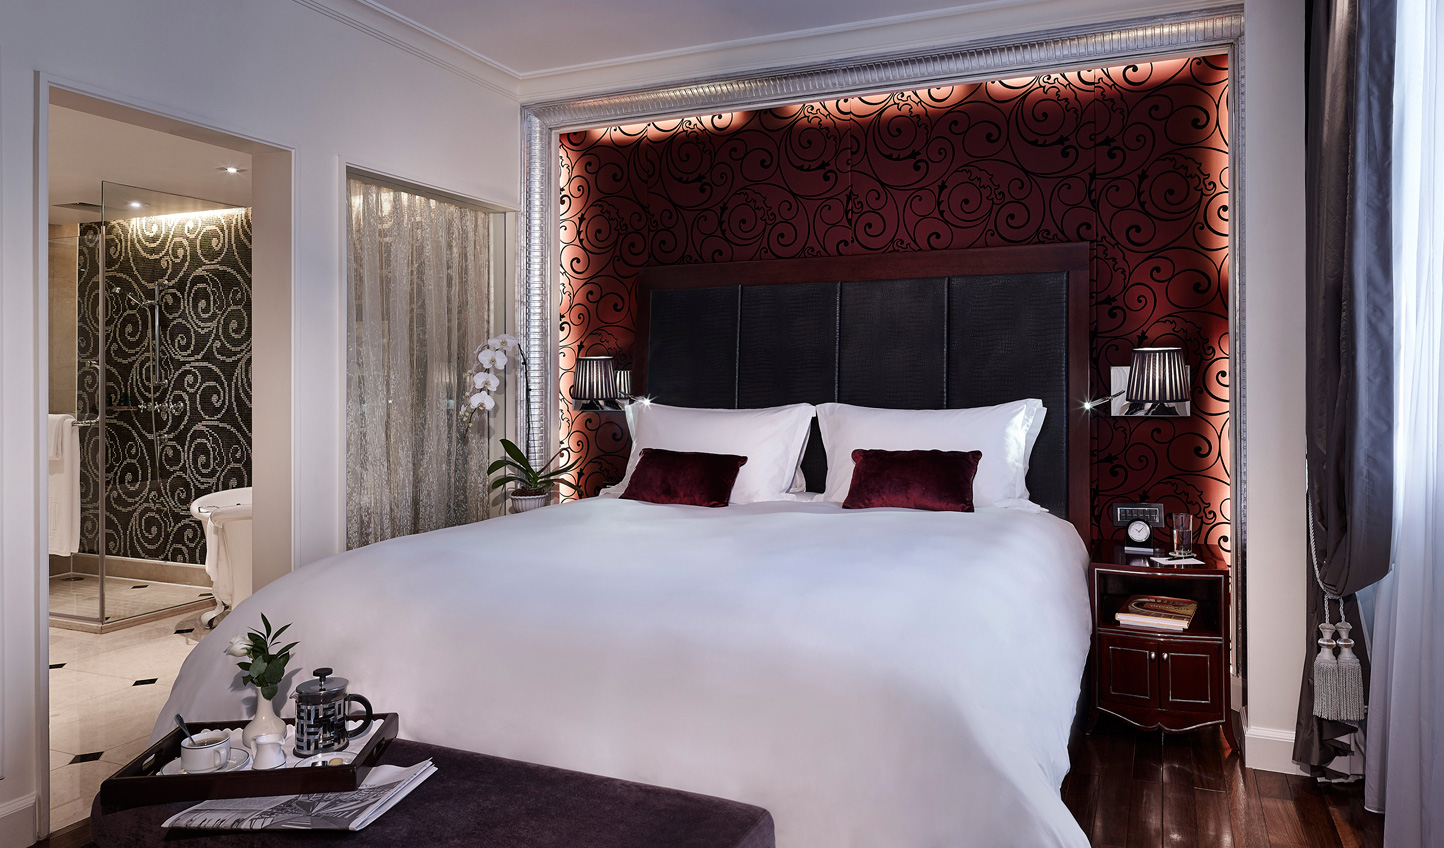 After a day exploring Hanoi, fall back into sumptuous luxury